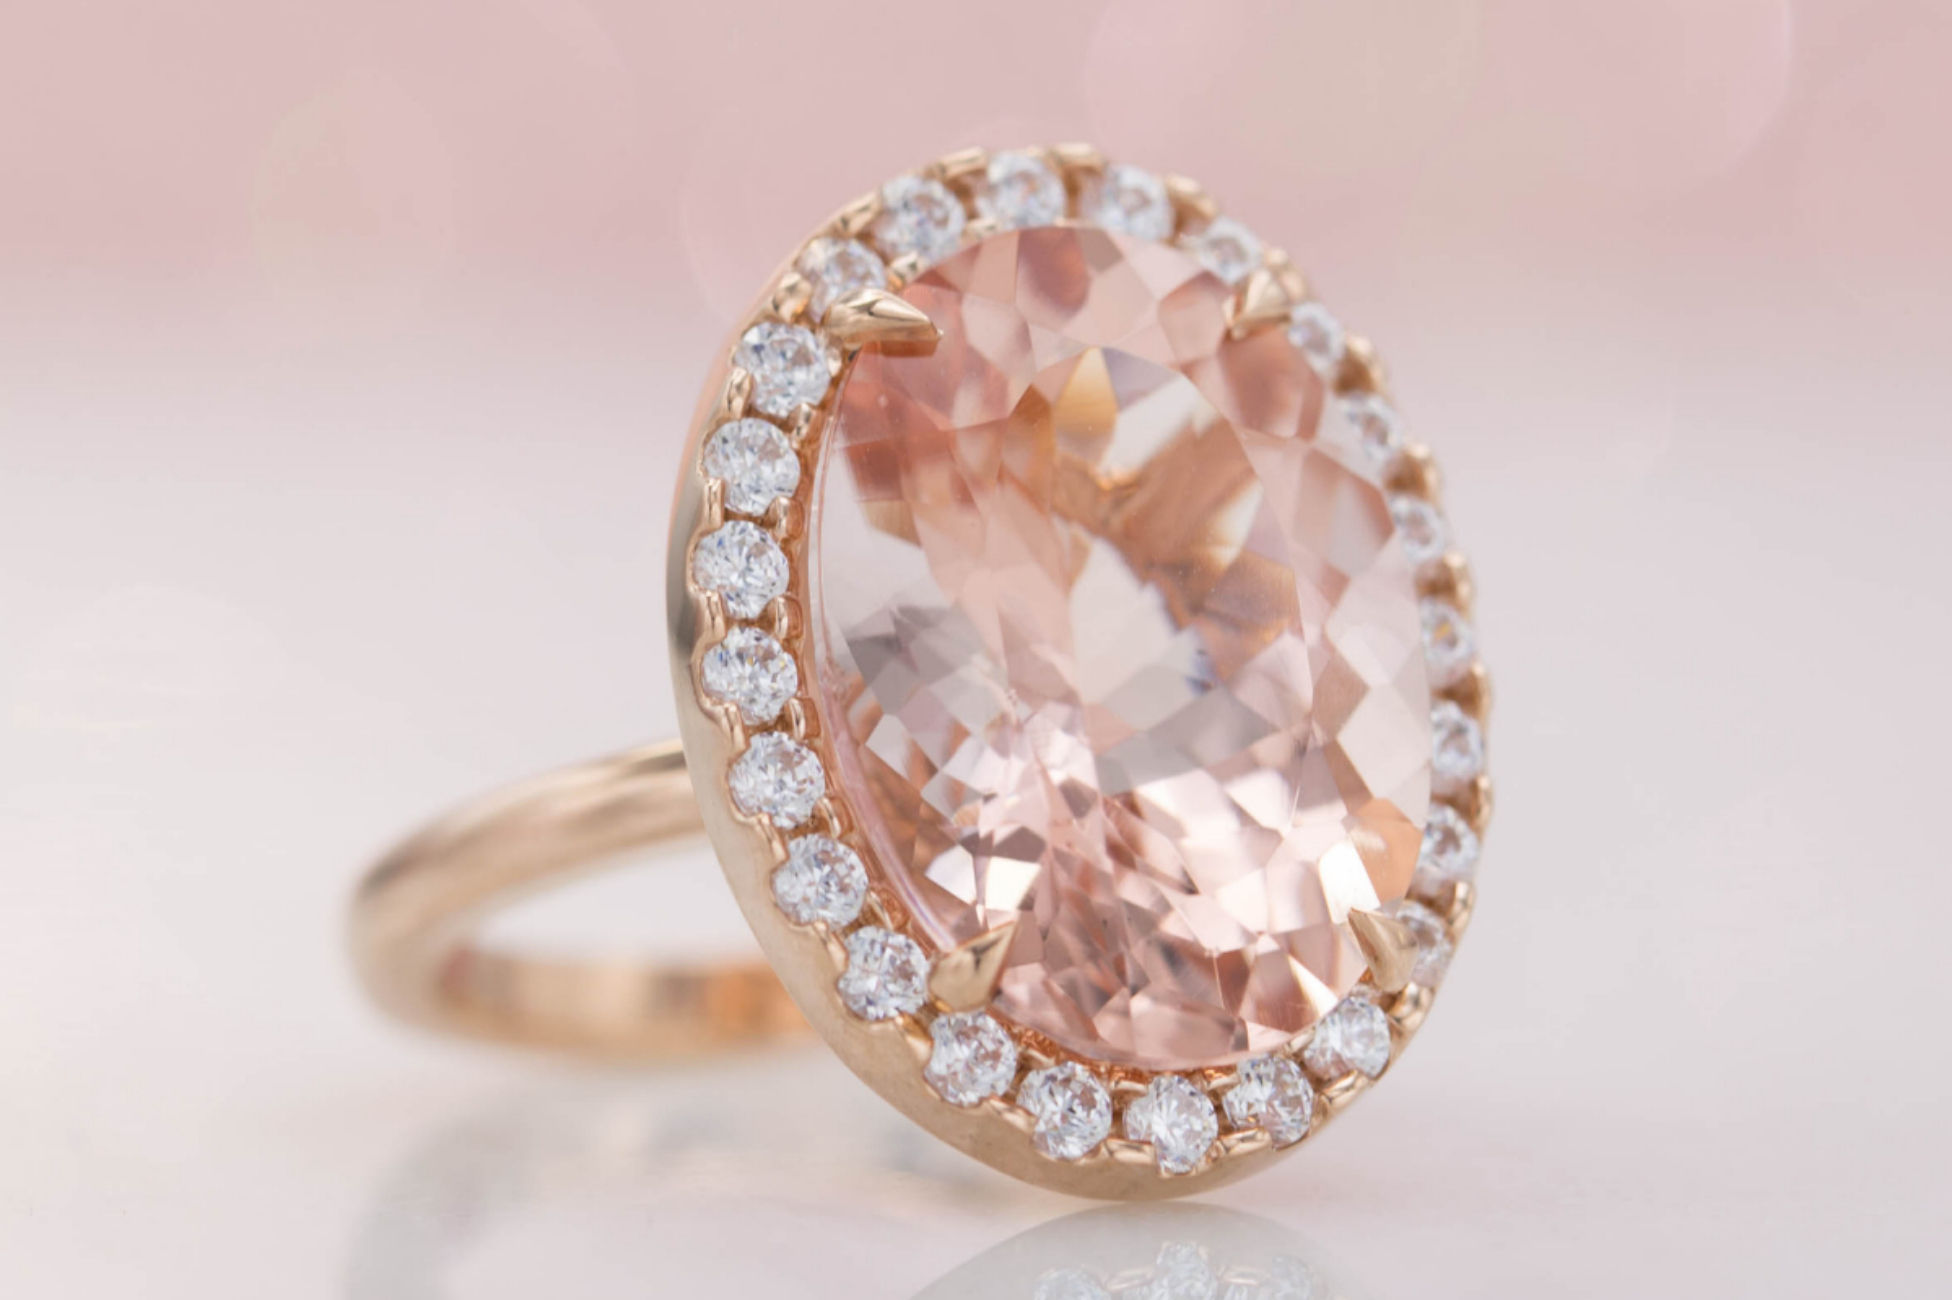 Halo engagement ring with huge oval morganite center stone